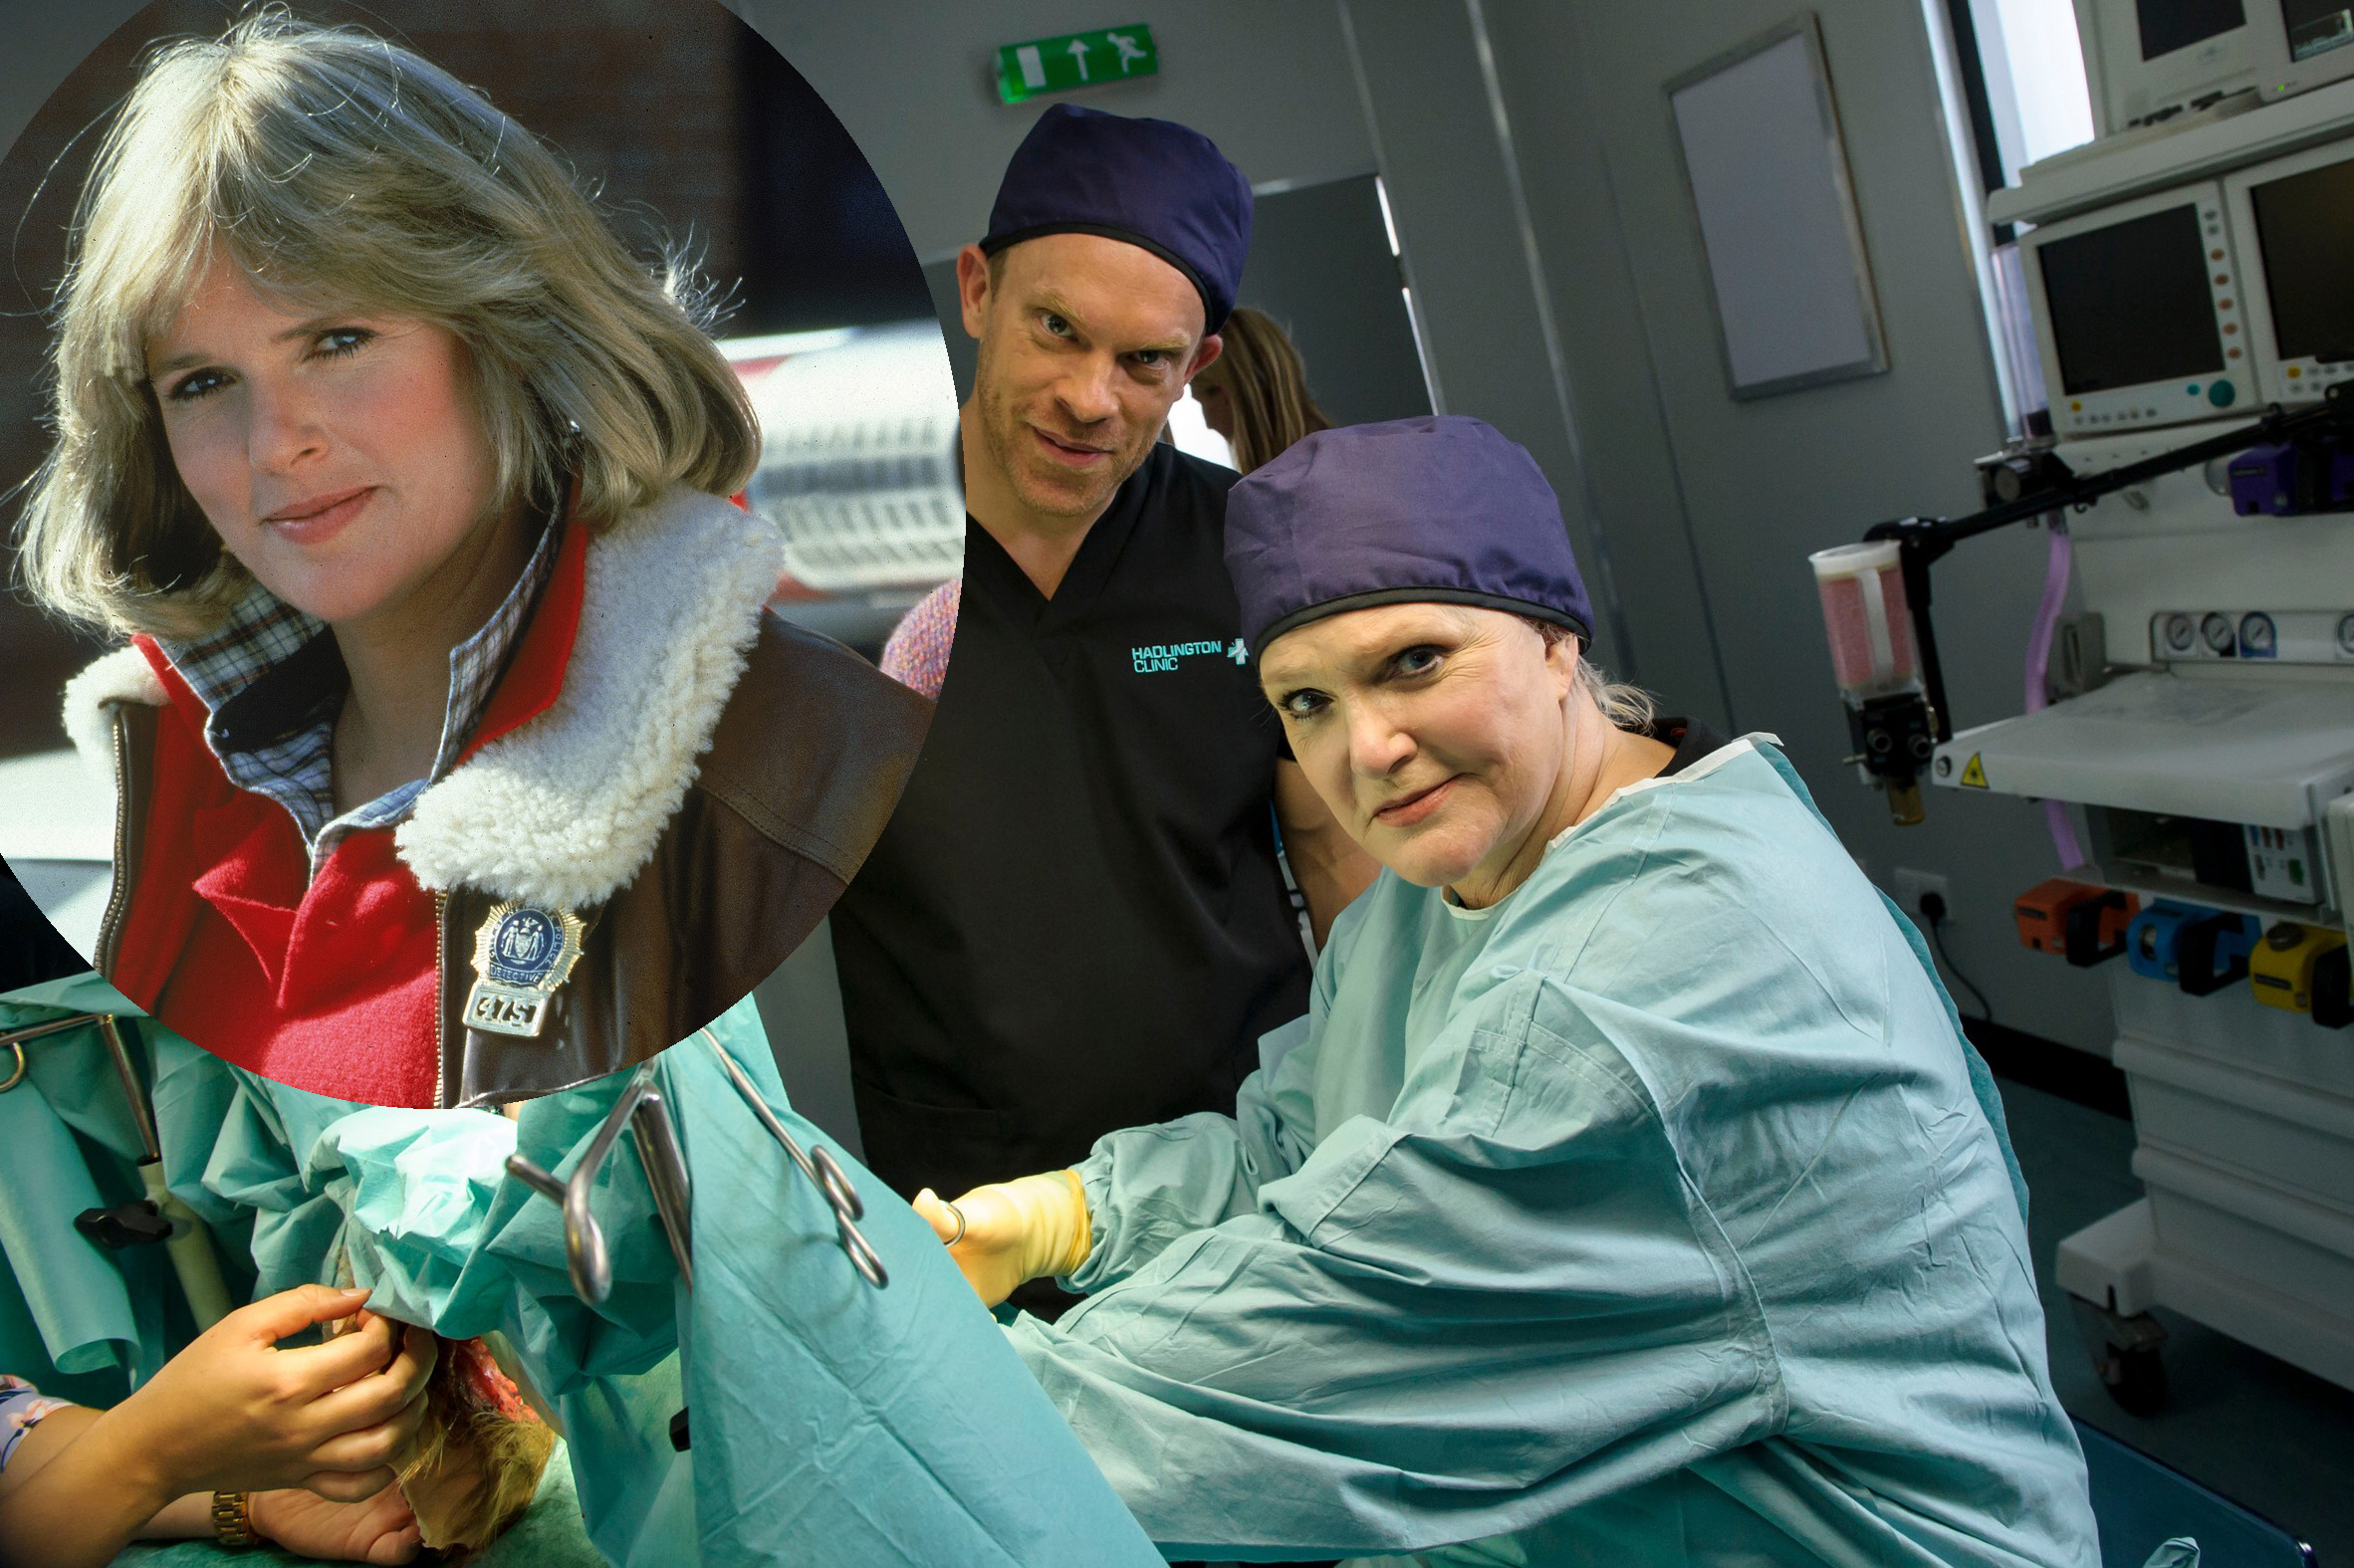 Cagney and Lacey star Sharon Gless in Casualty (Getty/BBC Pictures, JG)